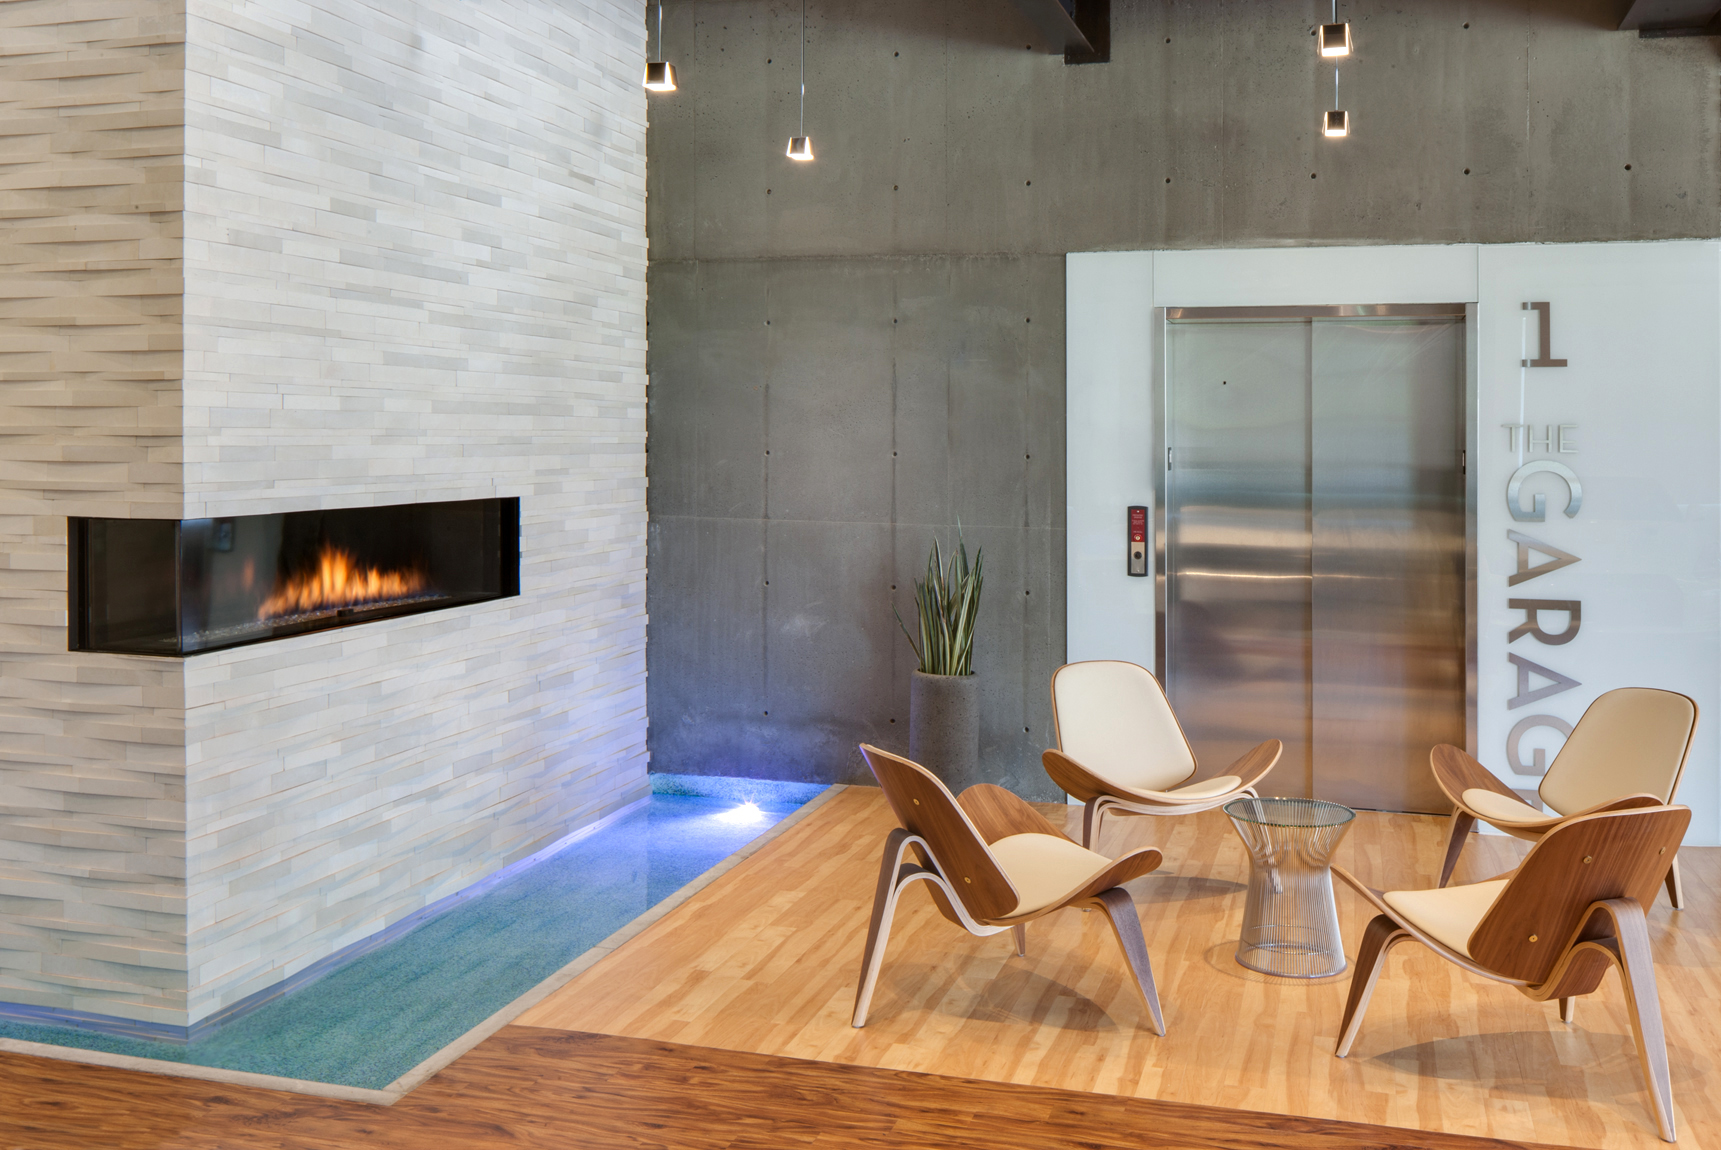 Modern office space with gas fire place, wood furniture, a water feature and a stainless steel elevator.Private Office Studio for Method StudiosArchitectural Photography by: Paul Richer / RICHER IMAGES